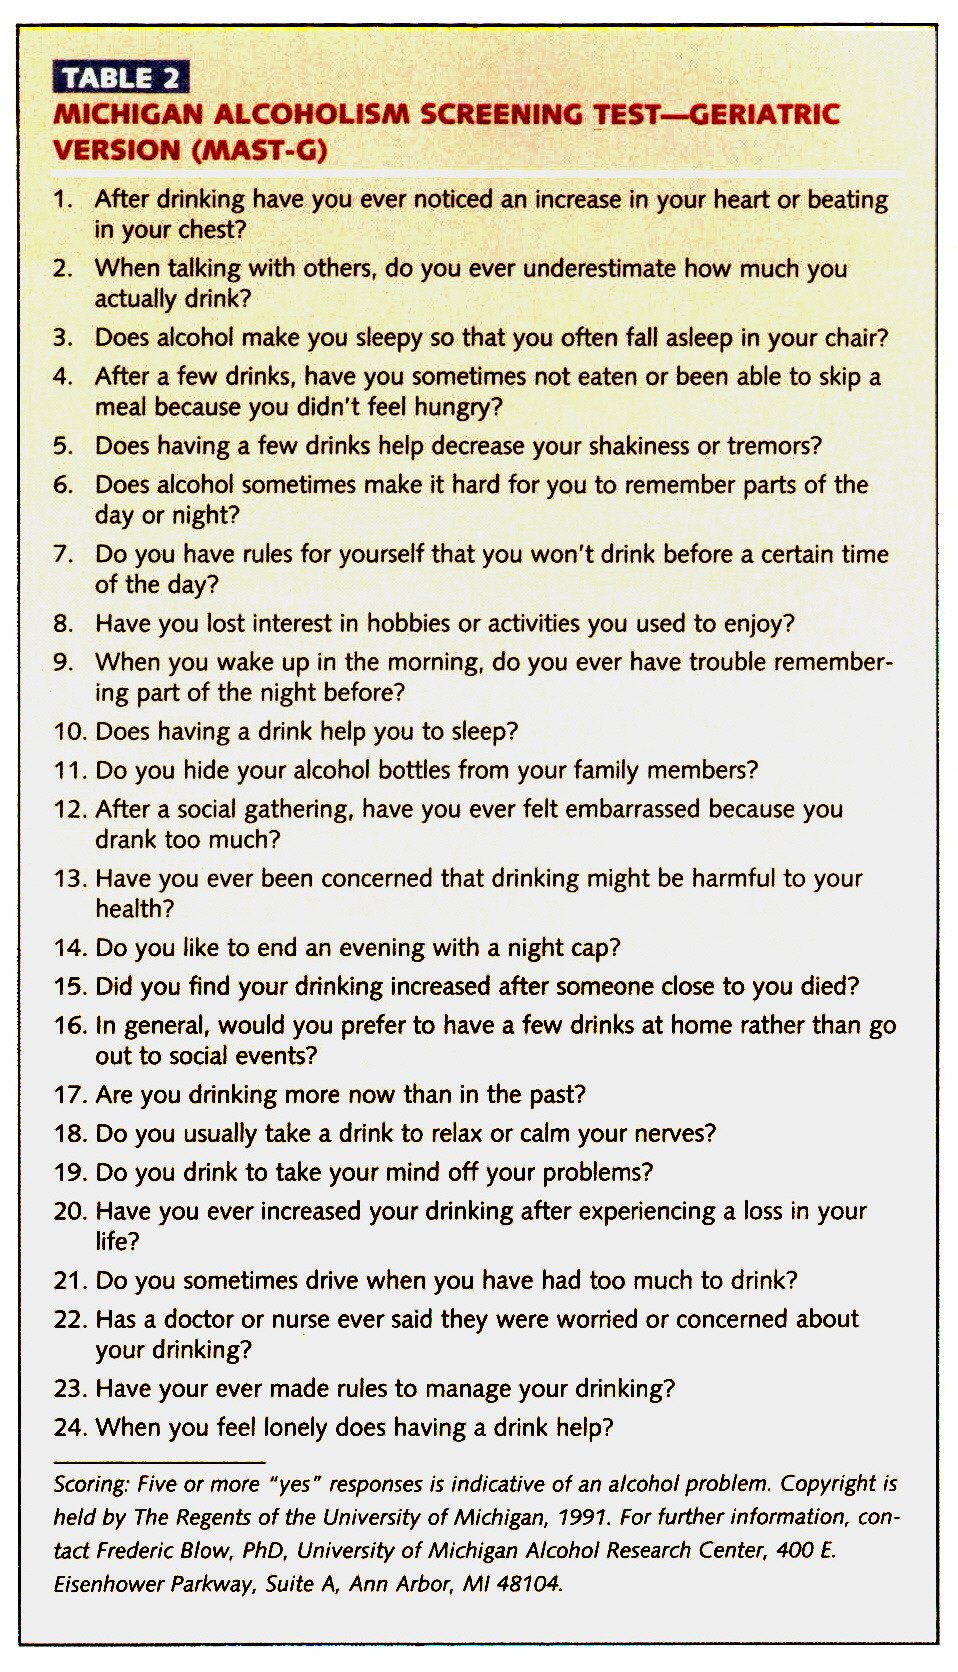 the michigan alcoholism screening test